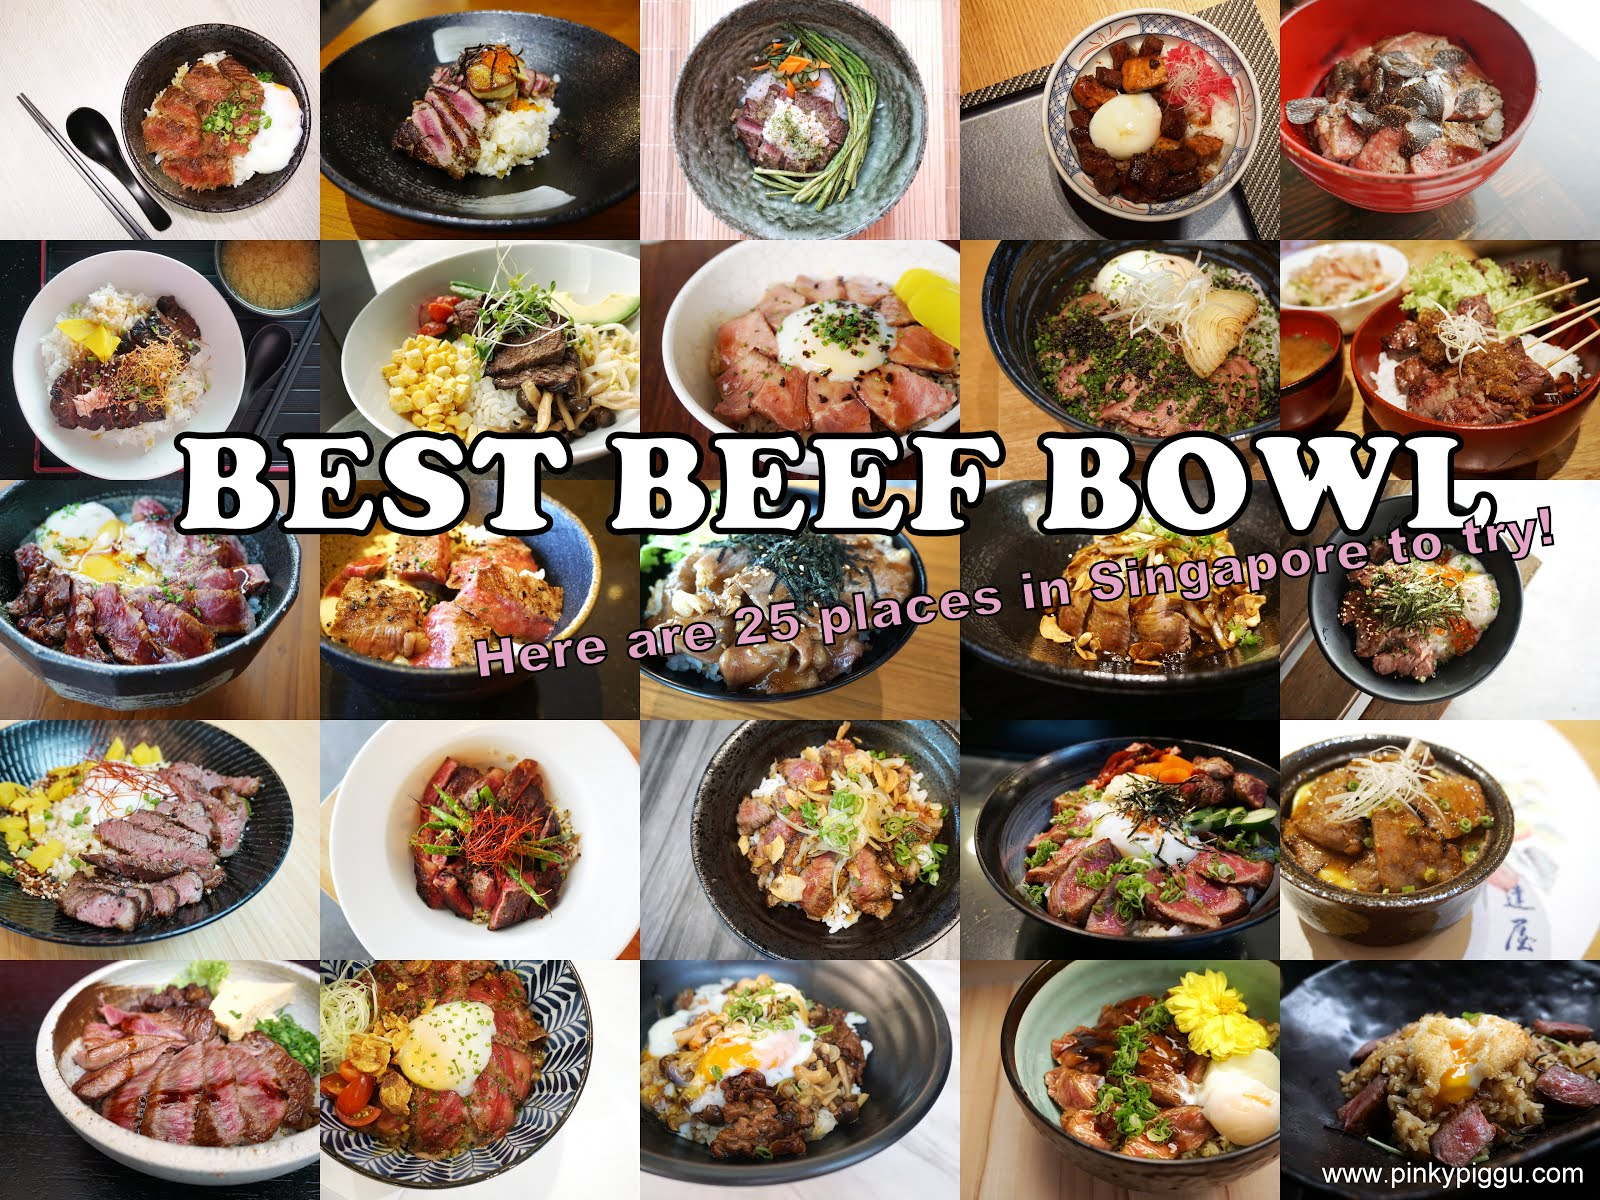 BEST BEEF BOWL! Here are 25 places in Singapore to try!